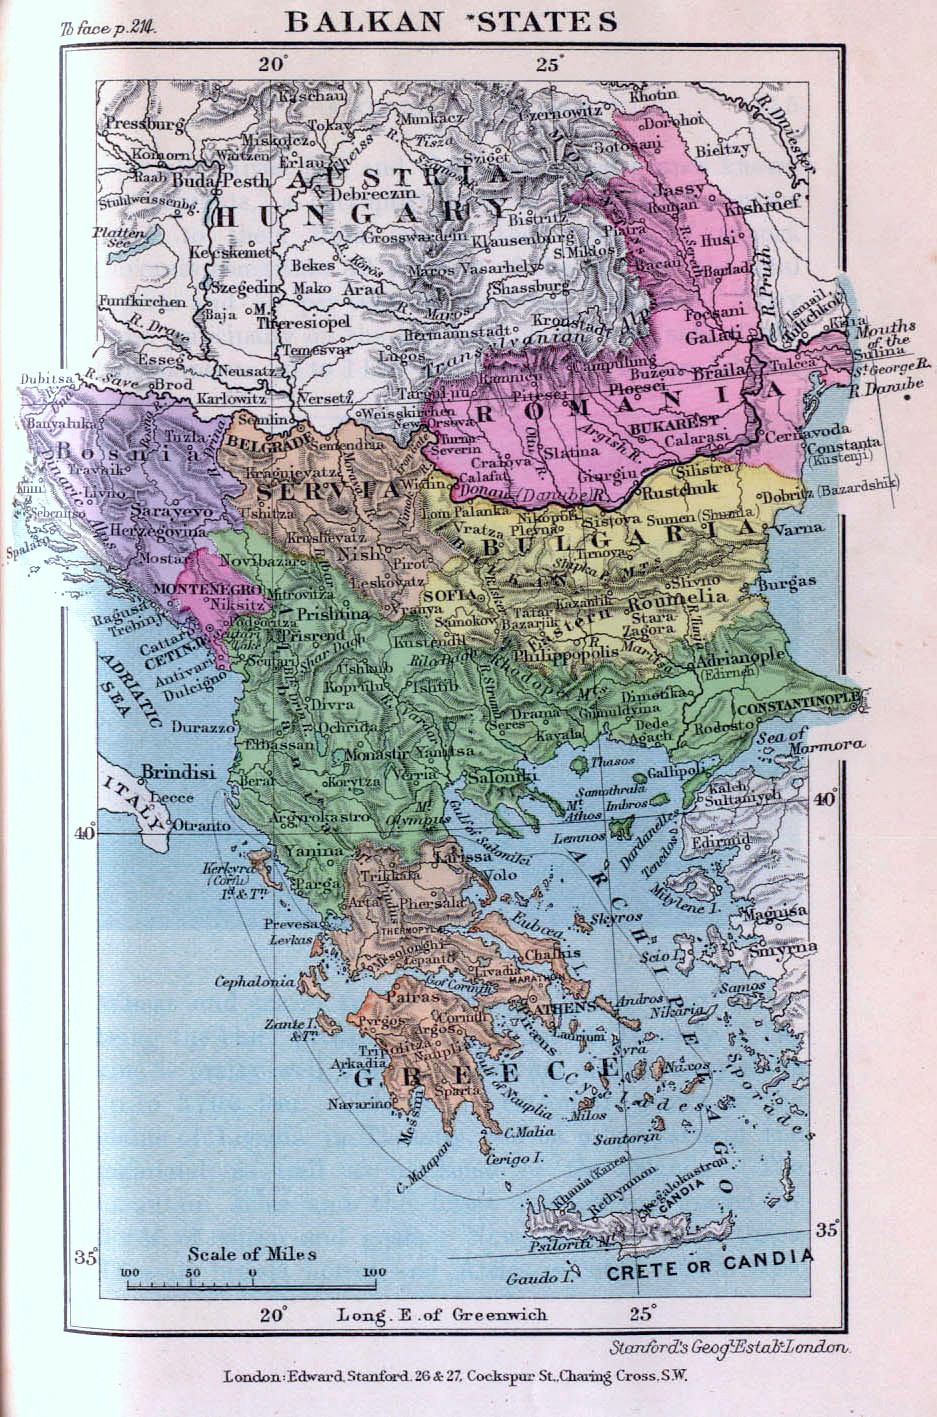 The Balkan states as of 1899